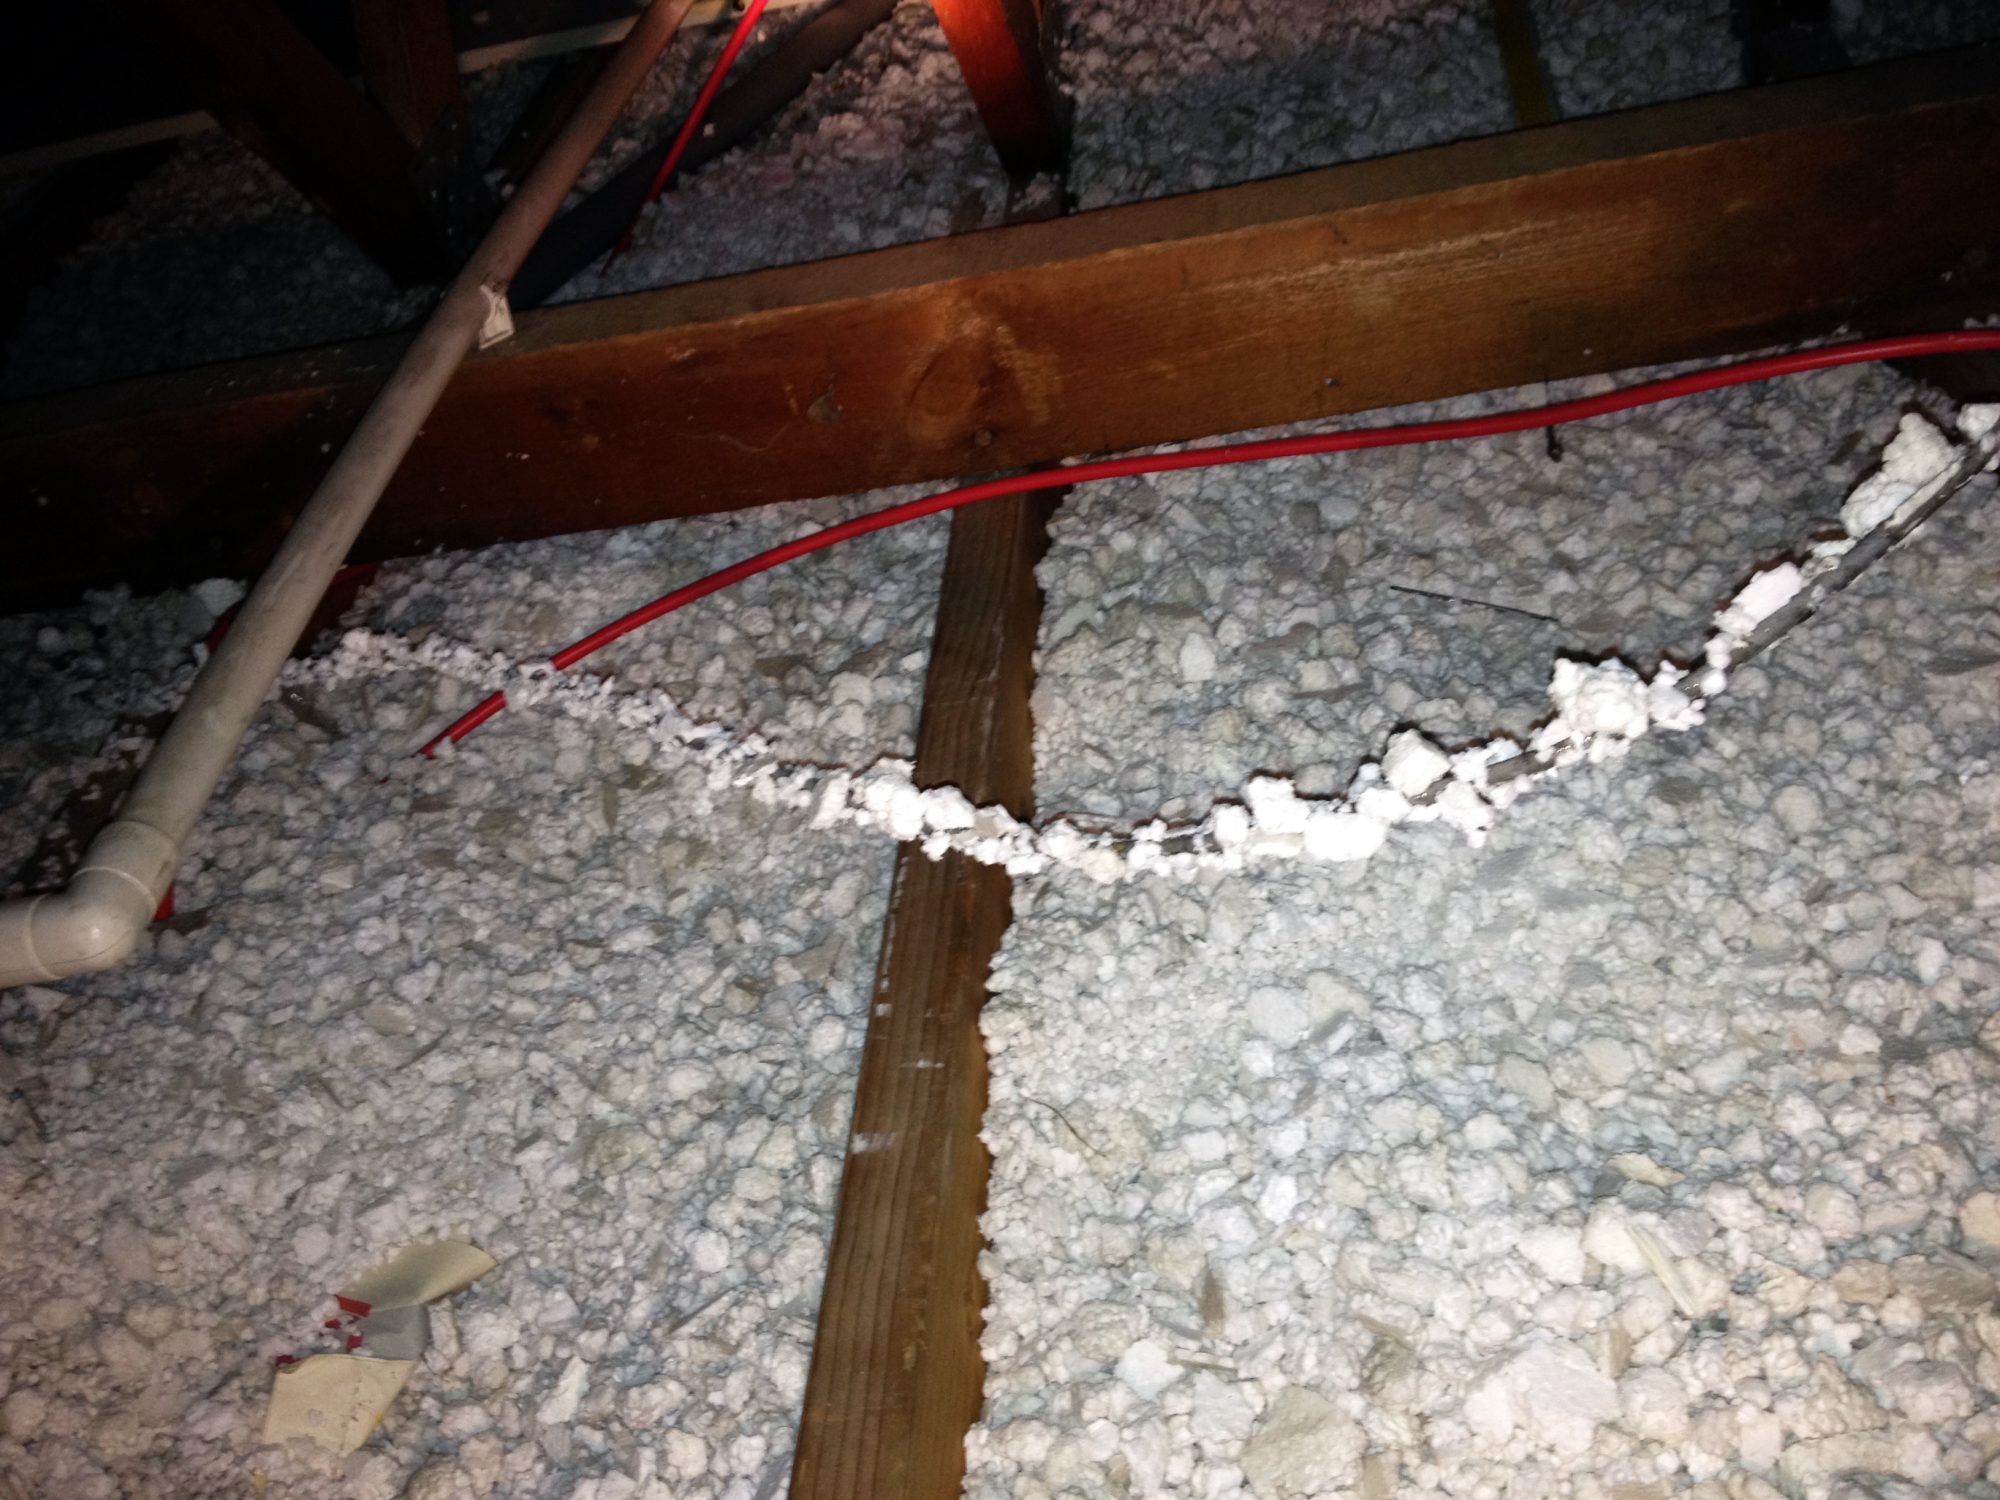 Polystyrene melting to cables